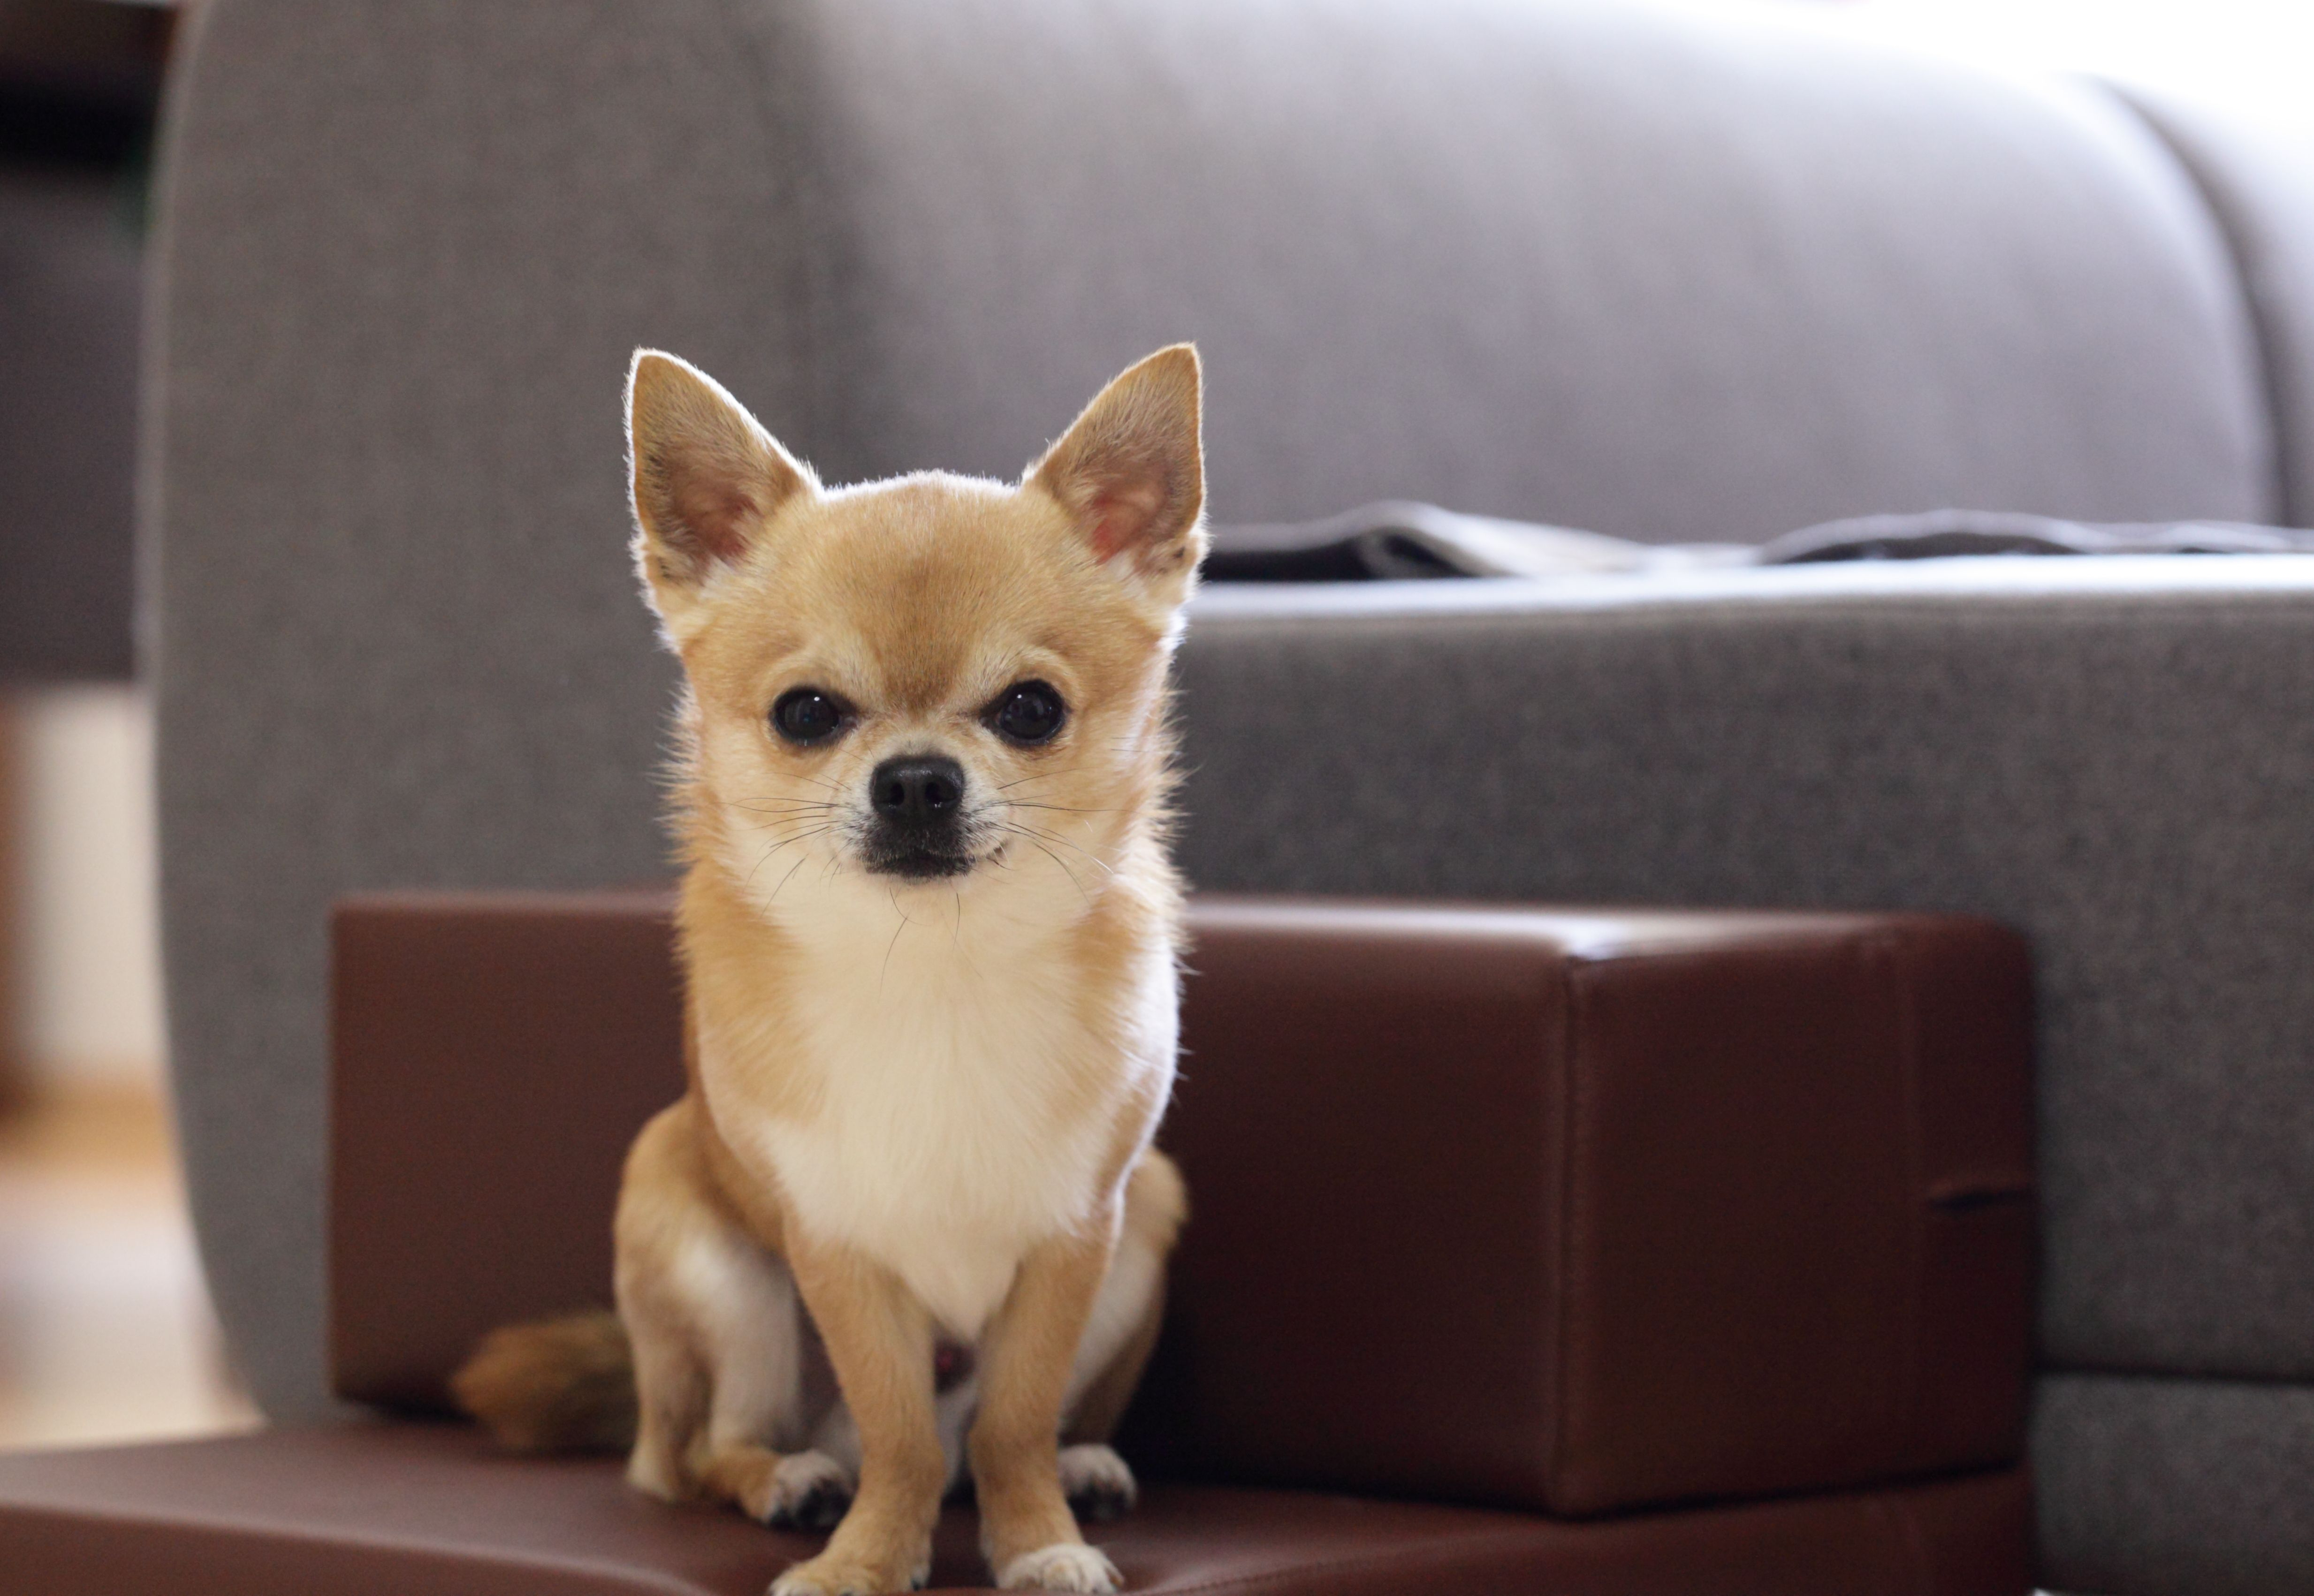 11 Of The Best Dogs For Apartment Dwellers Miniature dog